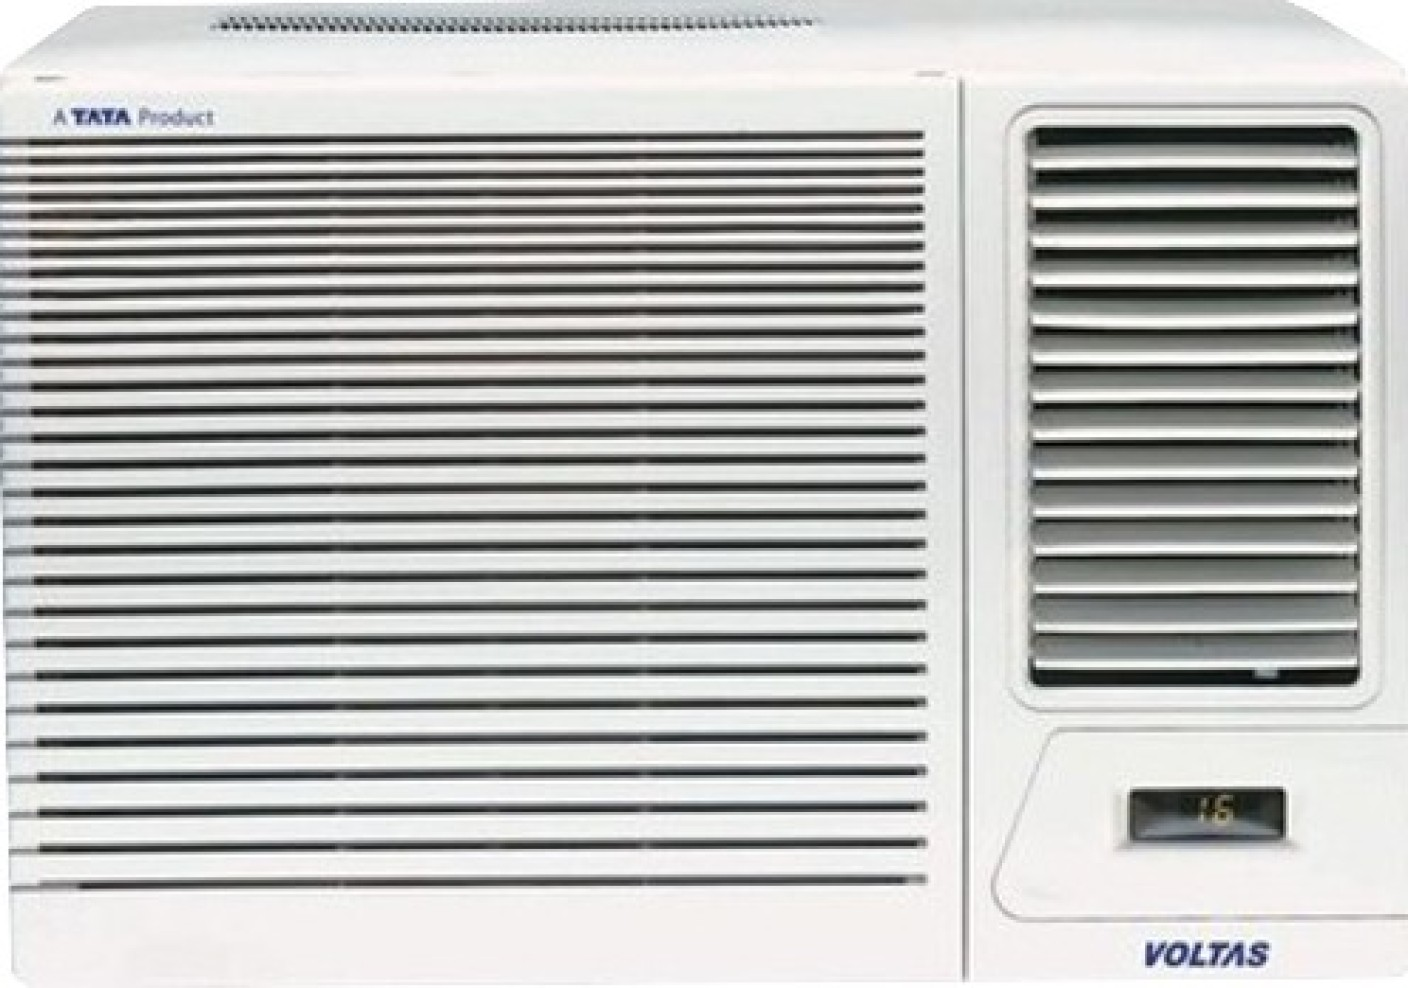 Buy voltas 1 5 ton 2 star bee rating 2017 for 1 5 ton window ac price india